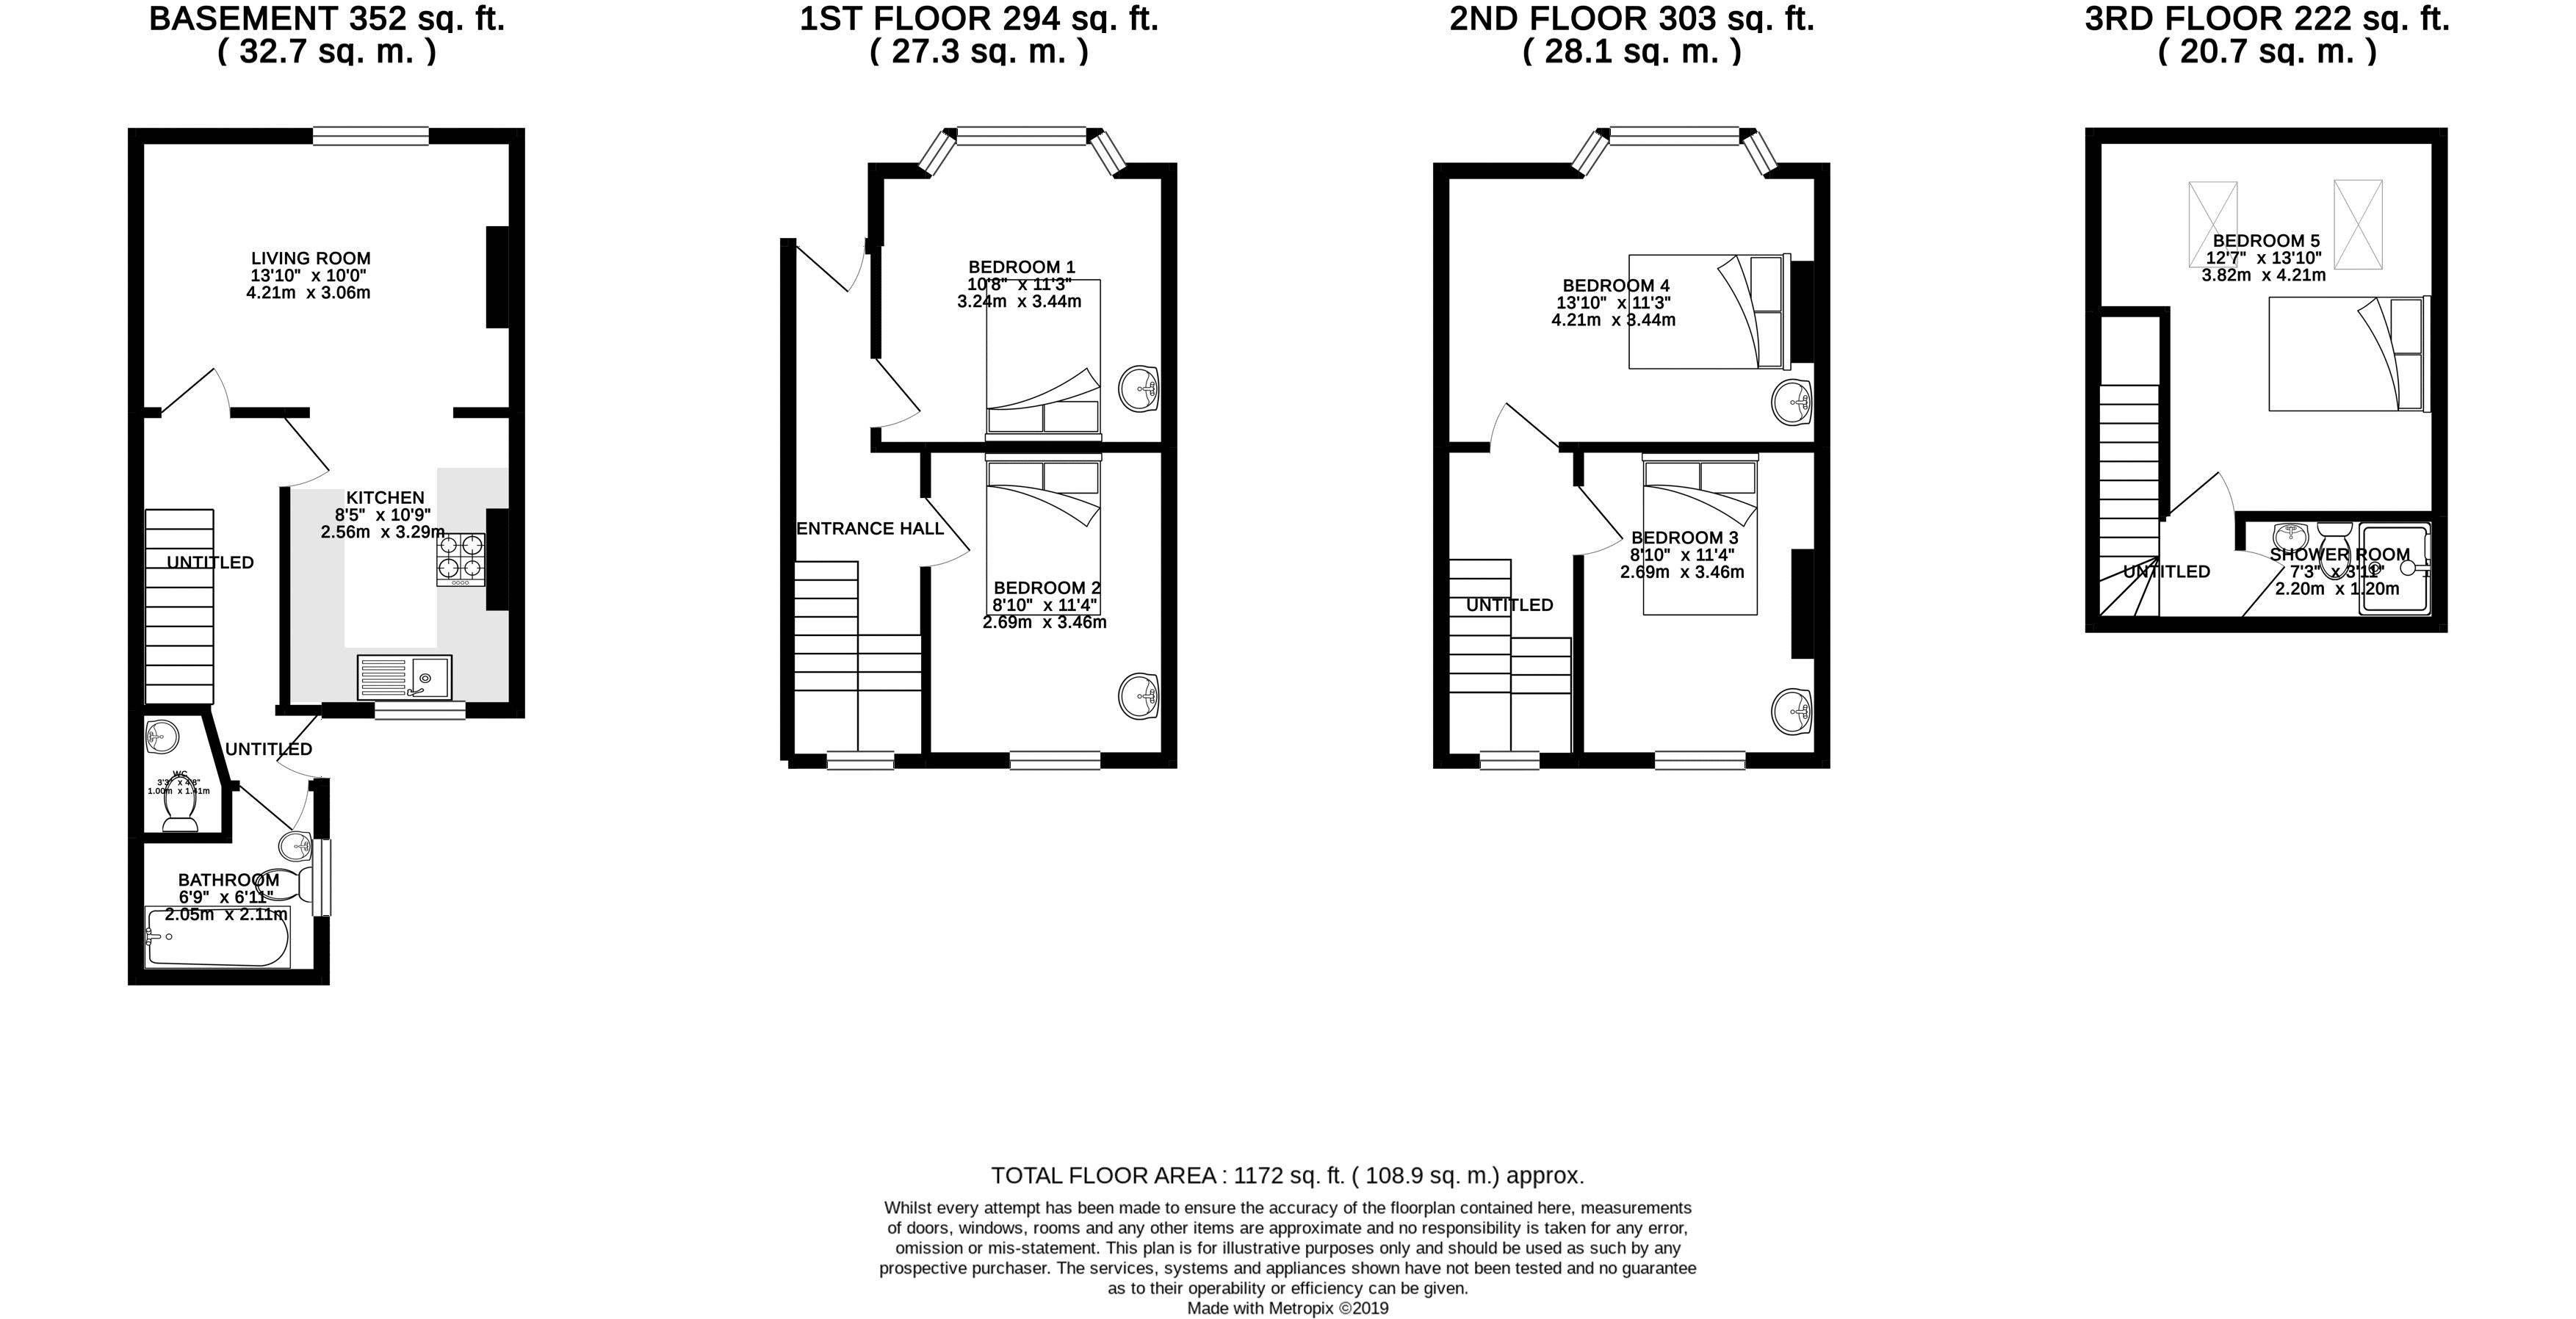 Floor plans for Park Crescent Road, Brighton property for sale in Lewes Road South, Brighton by Coapt